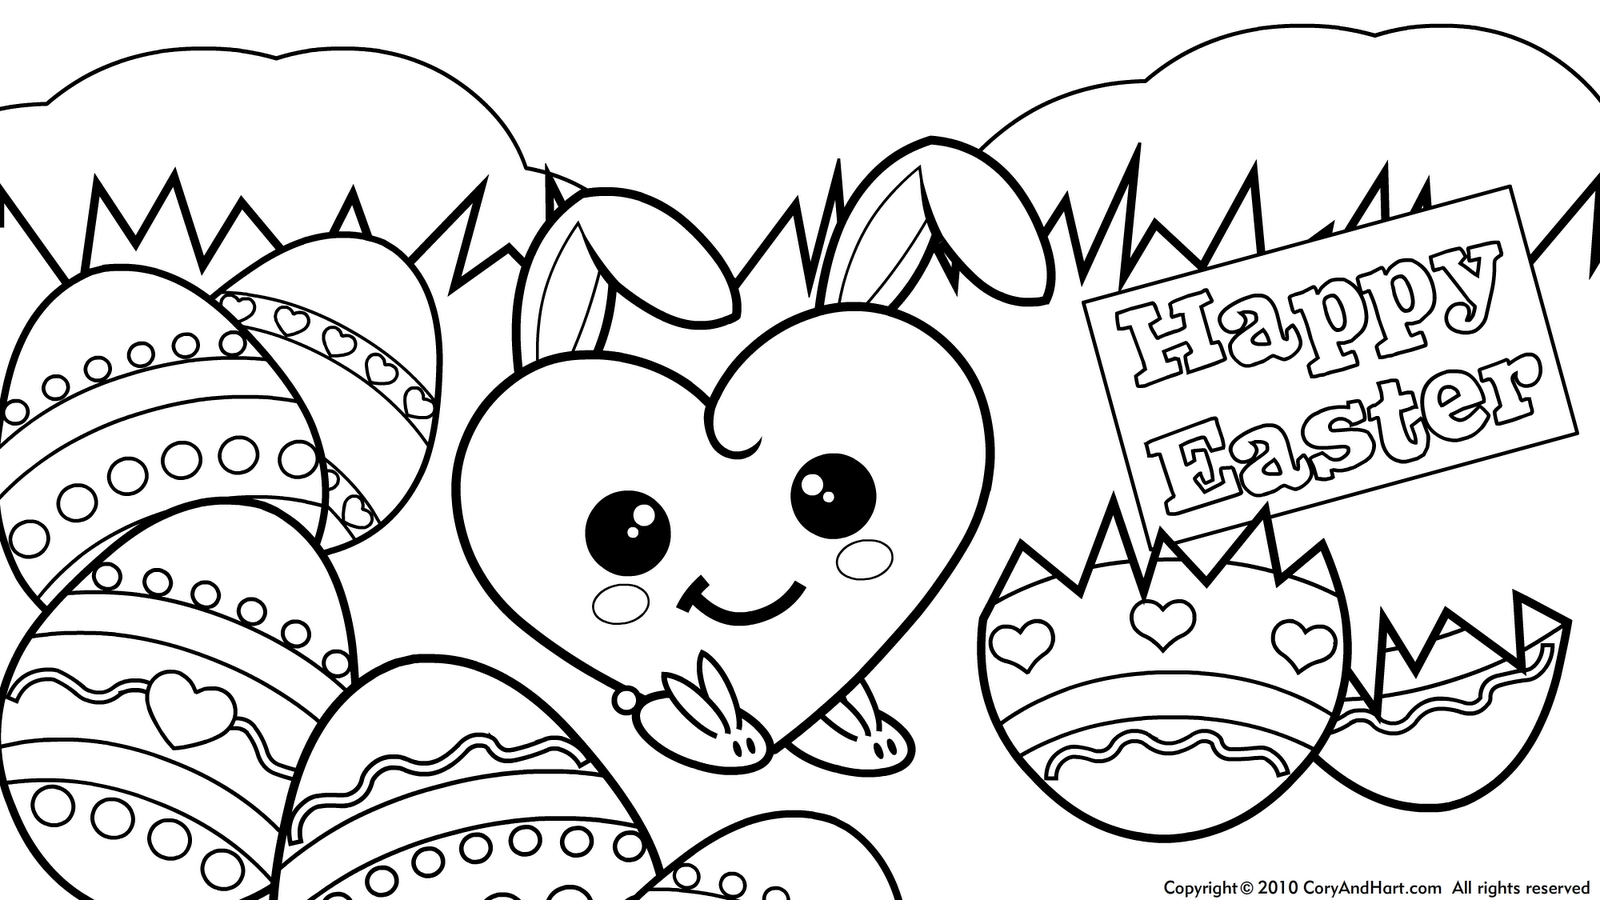 Easter-coloring-pages-disney - Coloring pages for adults,Coloring ...